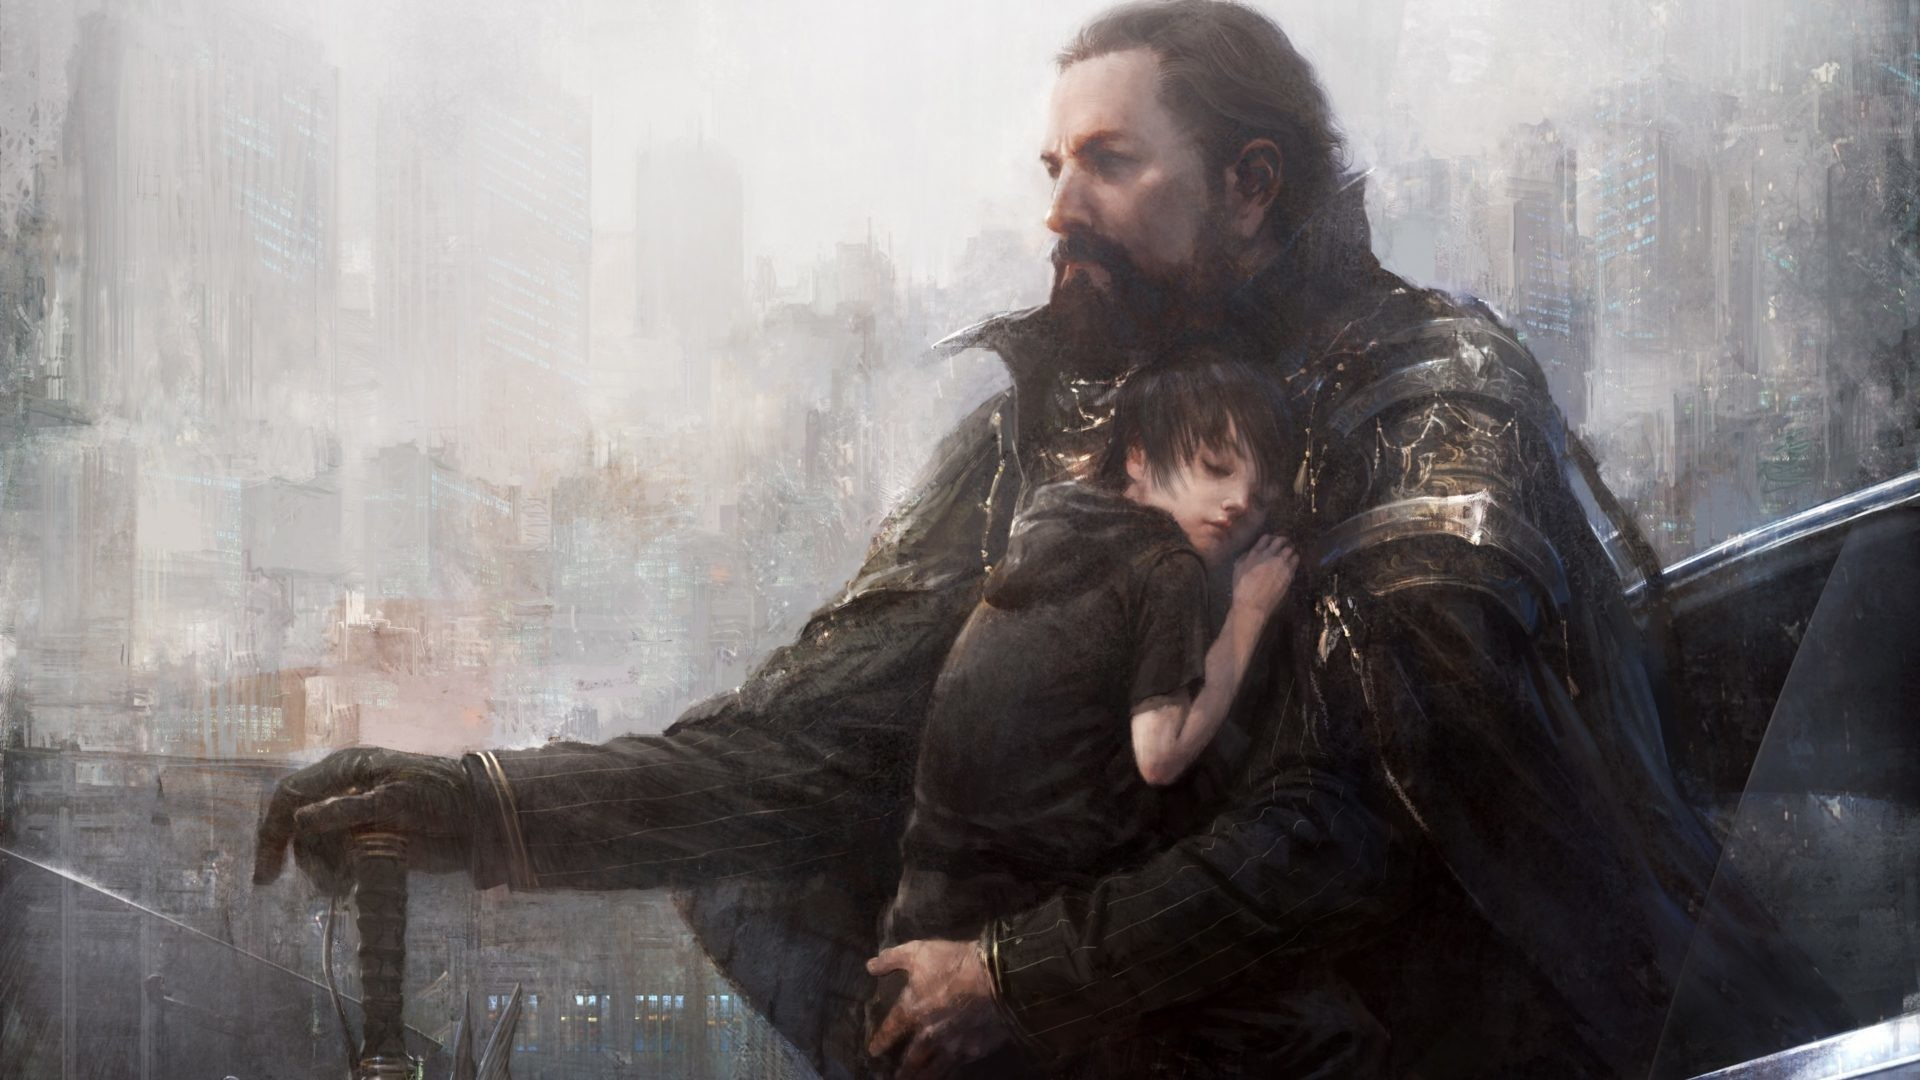 Ffxv Hd Wallpaper Posted By Zoey Mercado